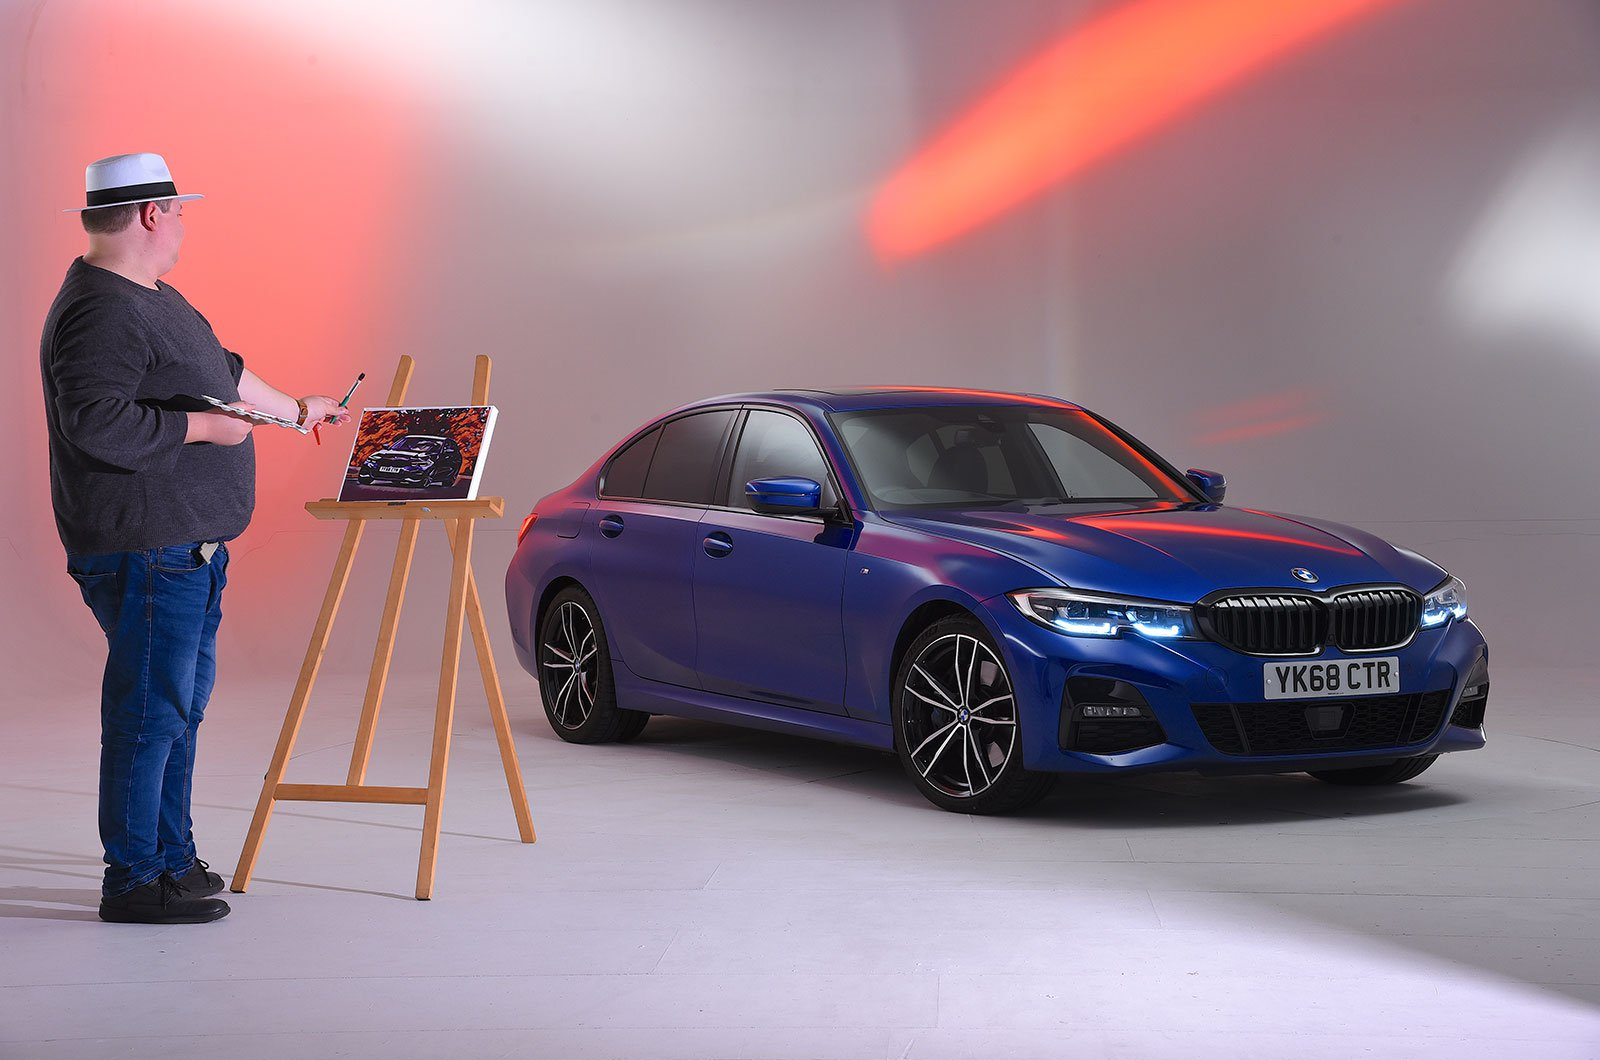 BMW 3 Series being painted in a studio